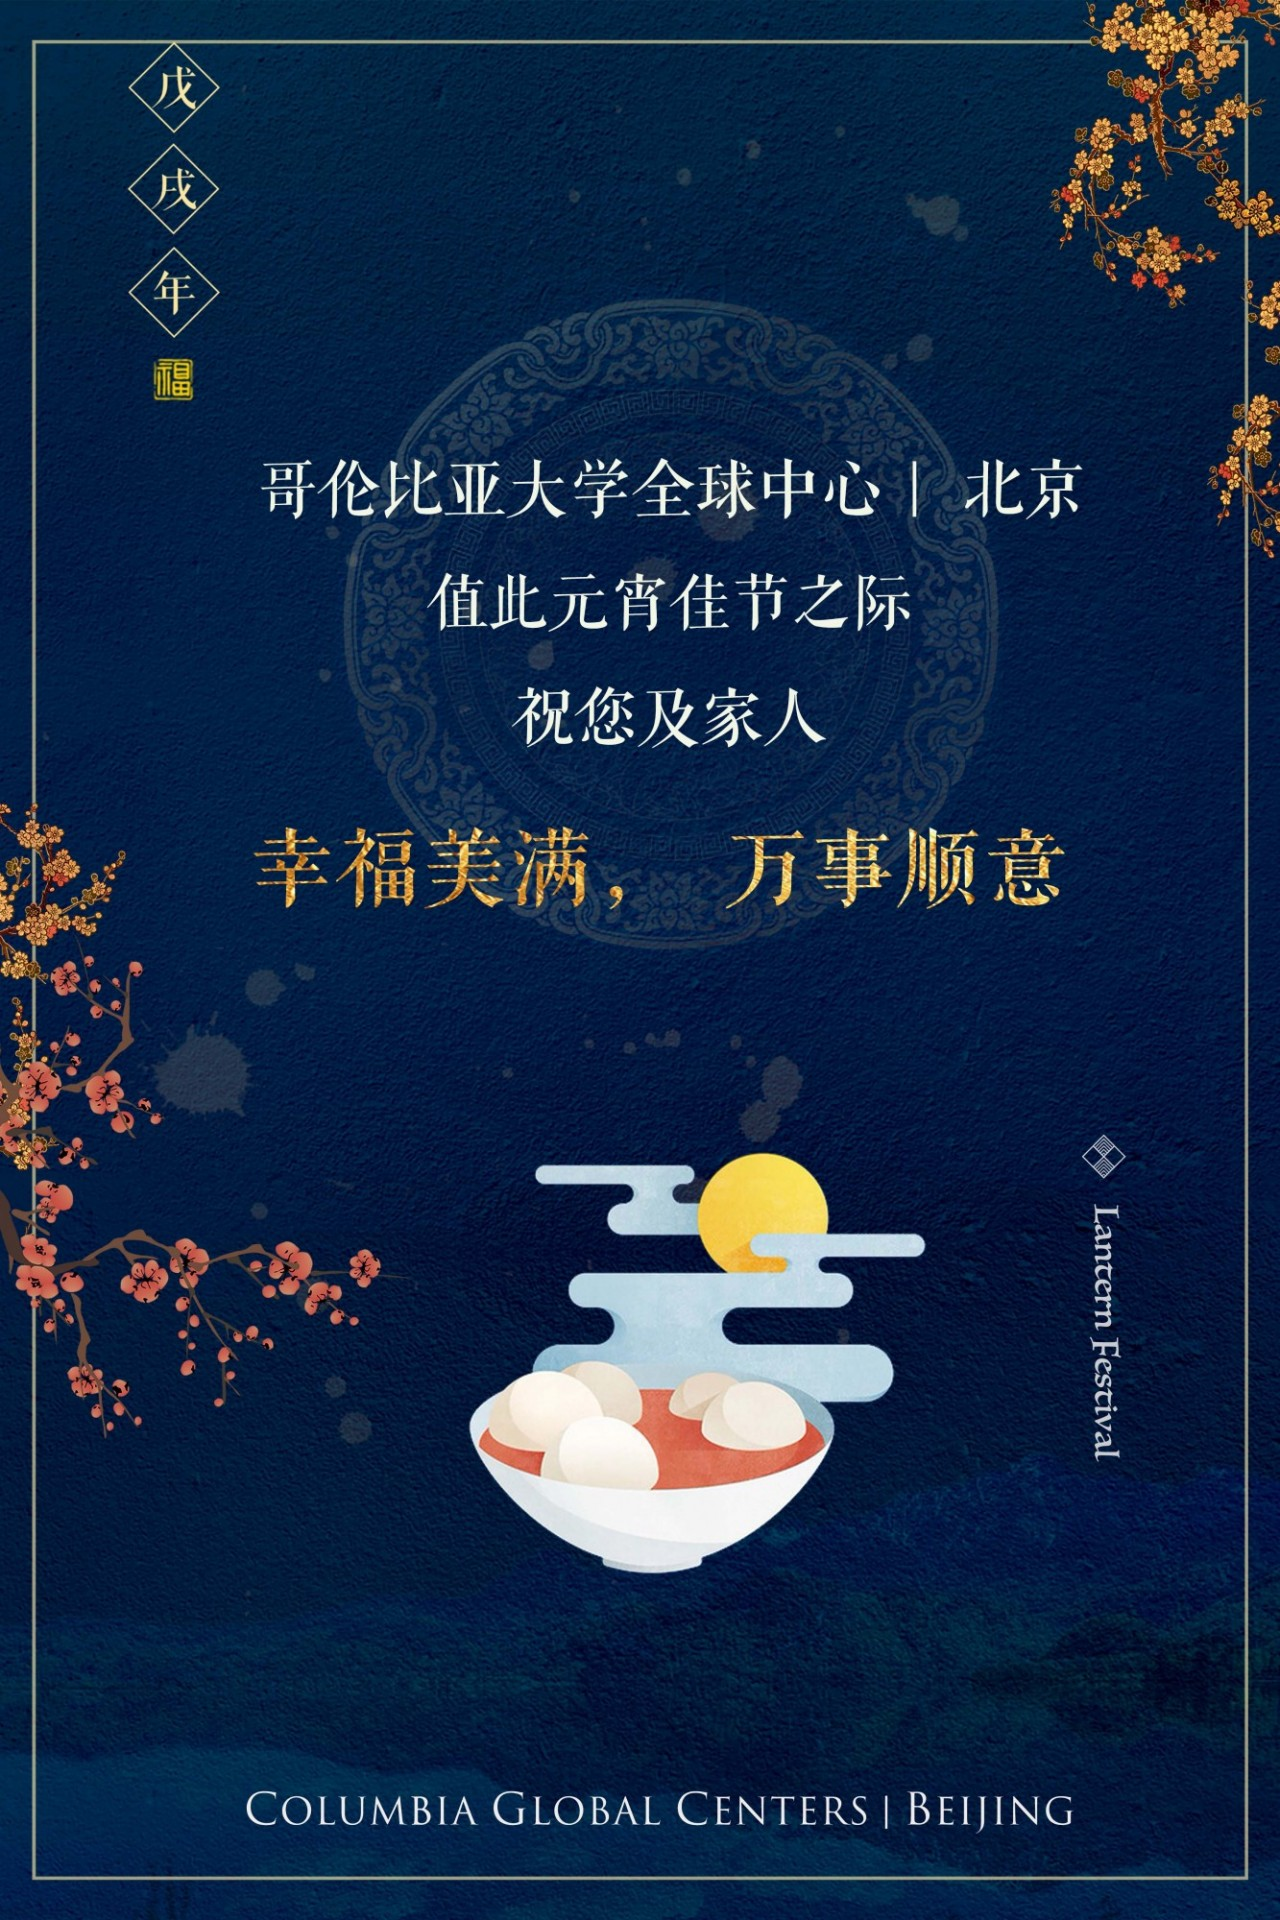 Columbia Global Centers | Beijing on Lantern Festival 2018